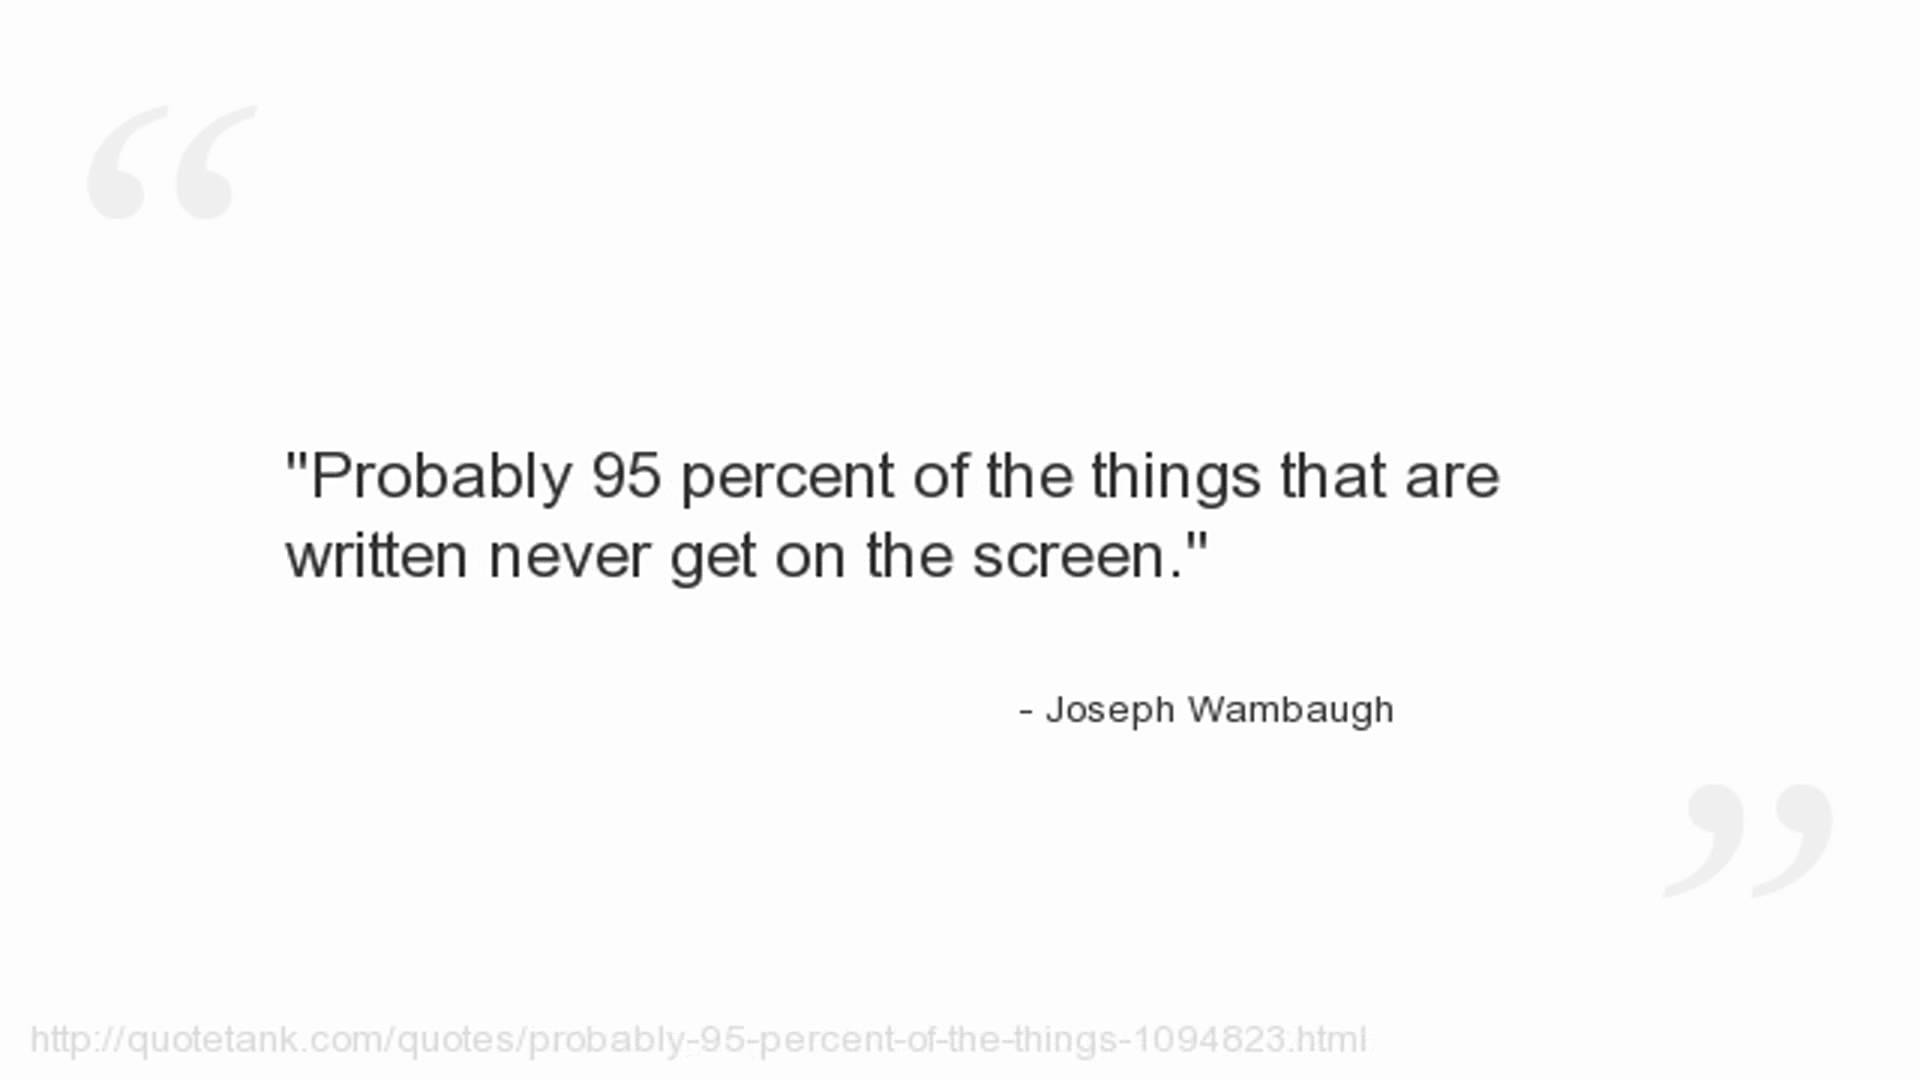 Joseph Wambaugh's quote #7